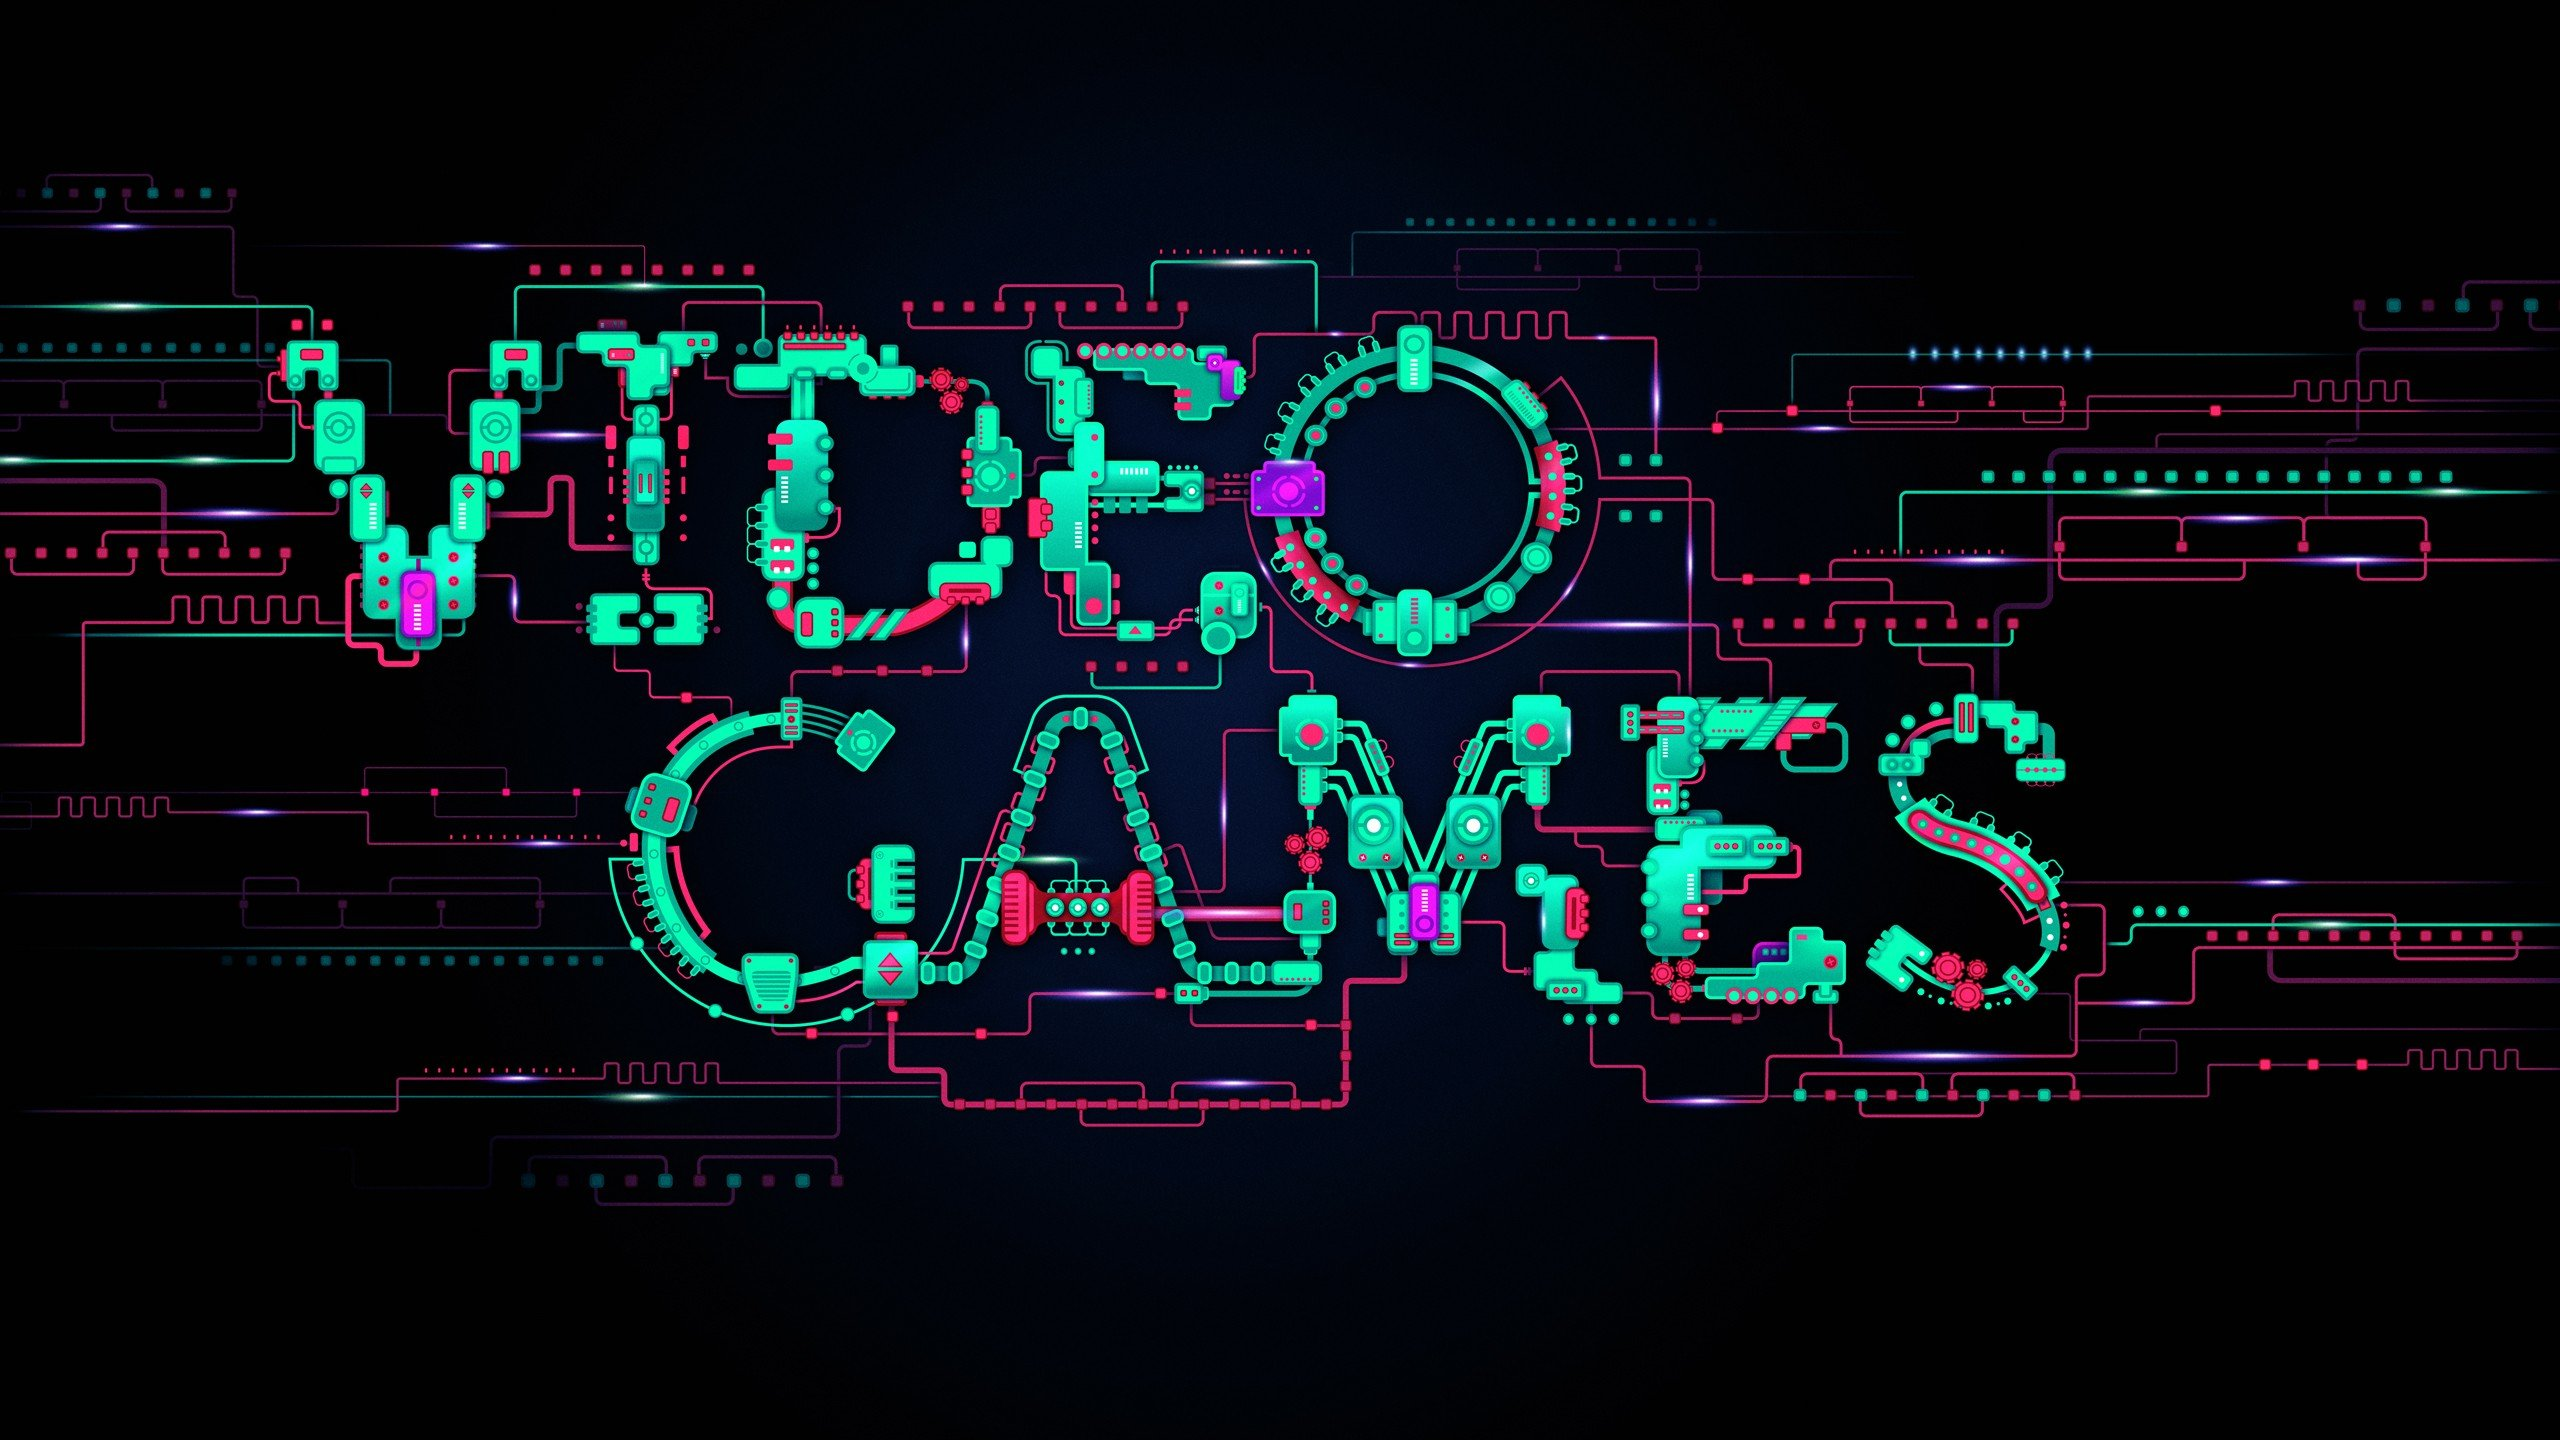 2560x1440 Video Games Typography desktop PC and Mac wallpaper 2560x1440